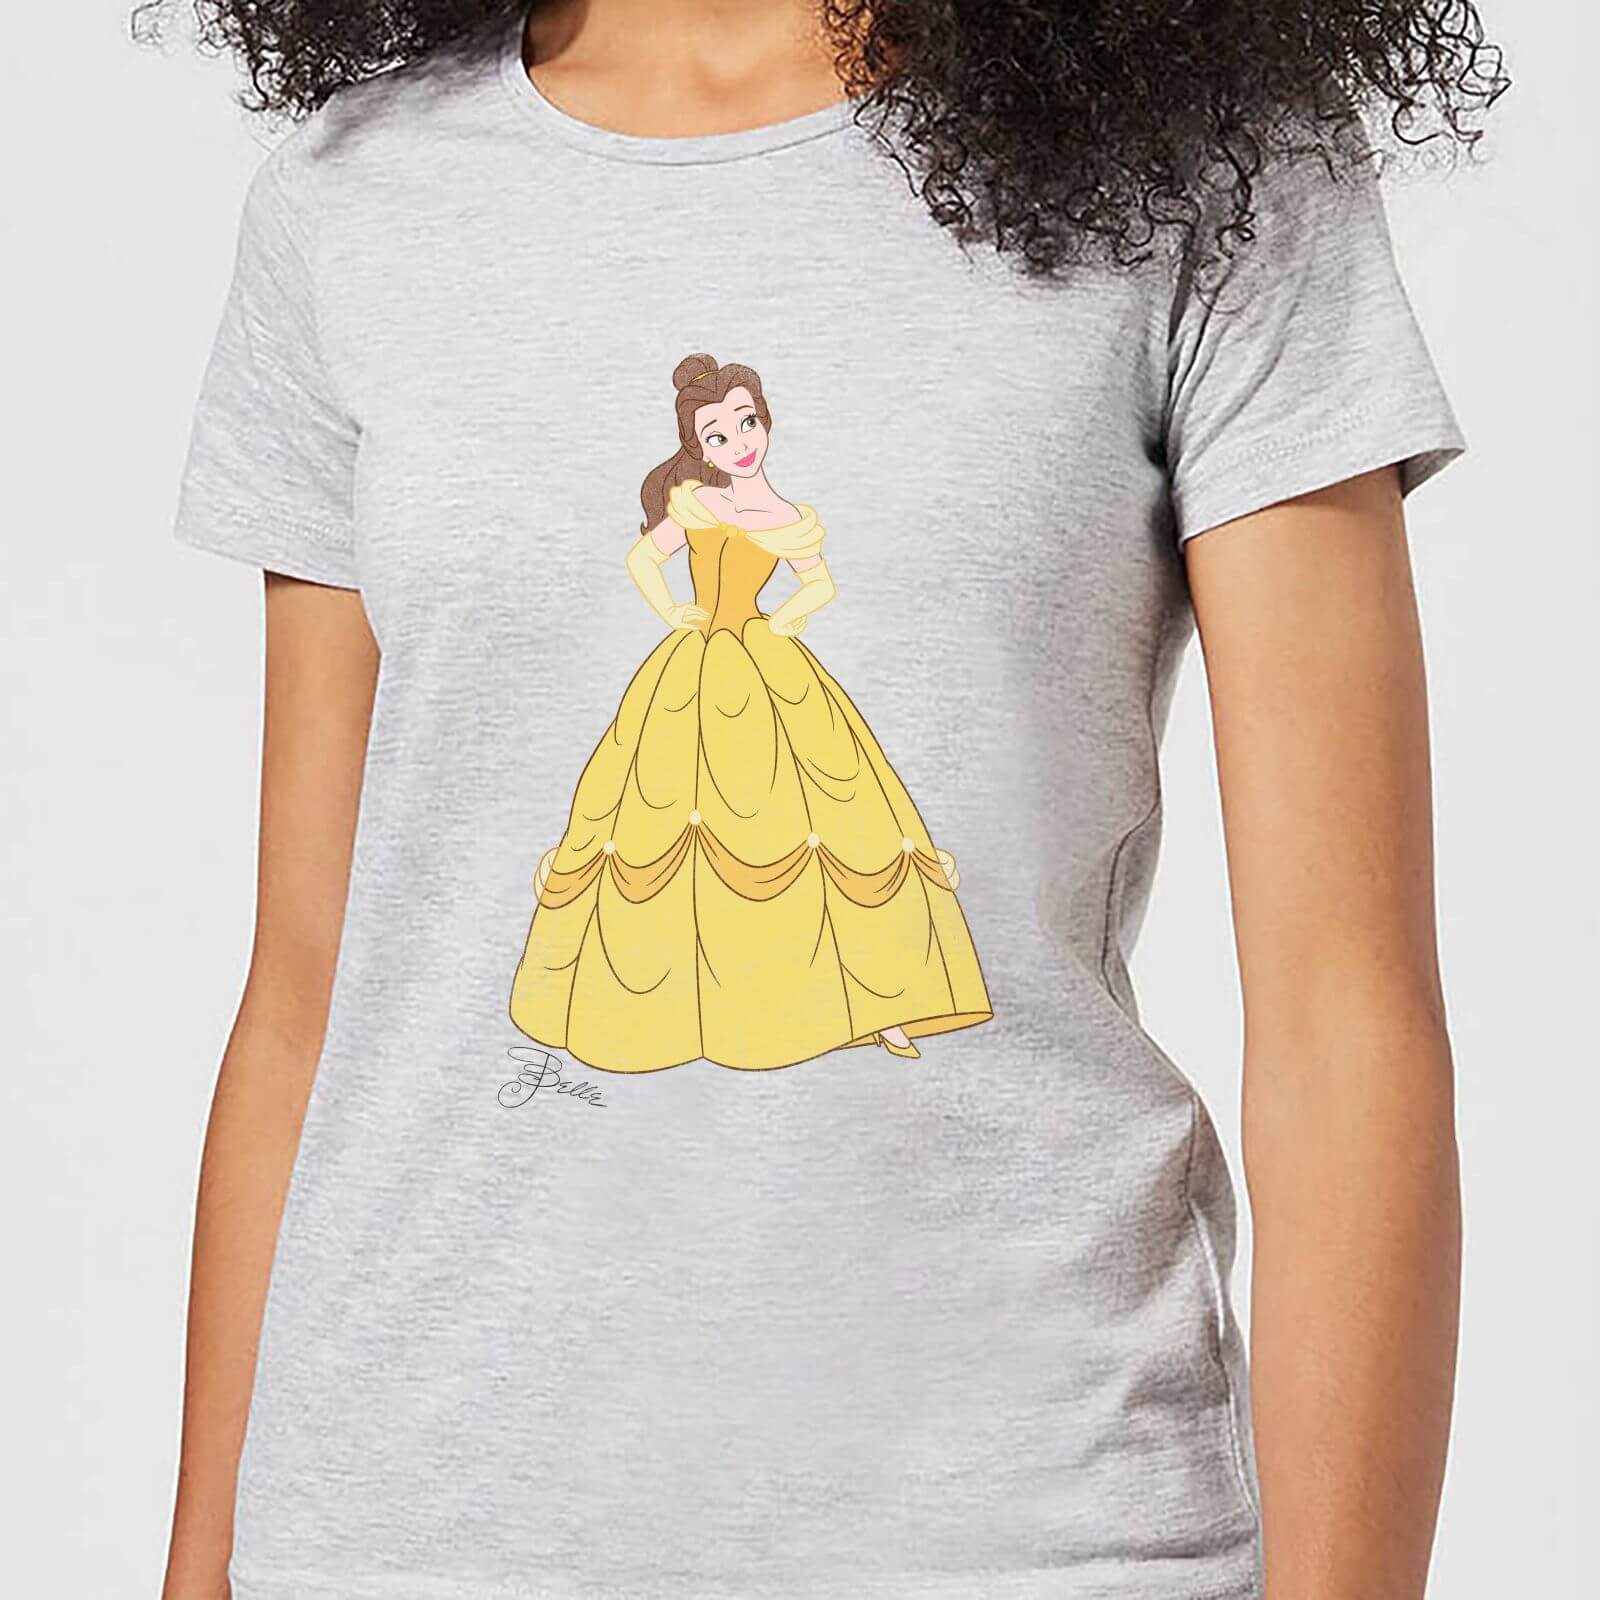 a80ed31d9 Disney Beauty And The Beast Princess Belle Classic Women's T-Shirt - Grey  Clothing | Zavvi Australia